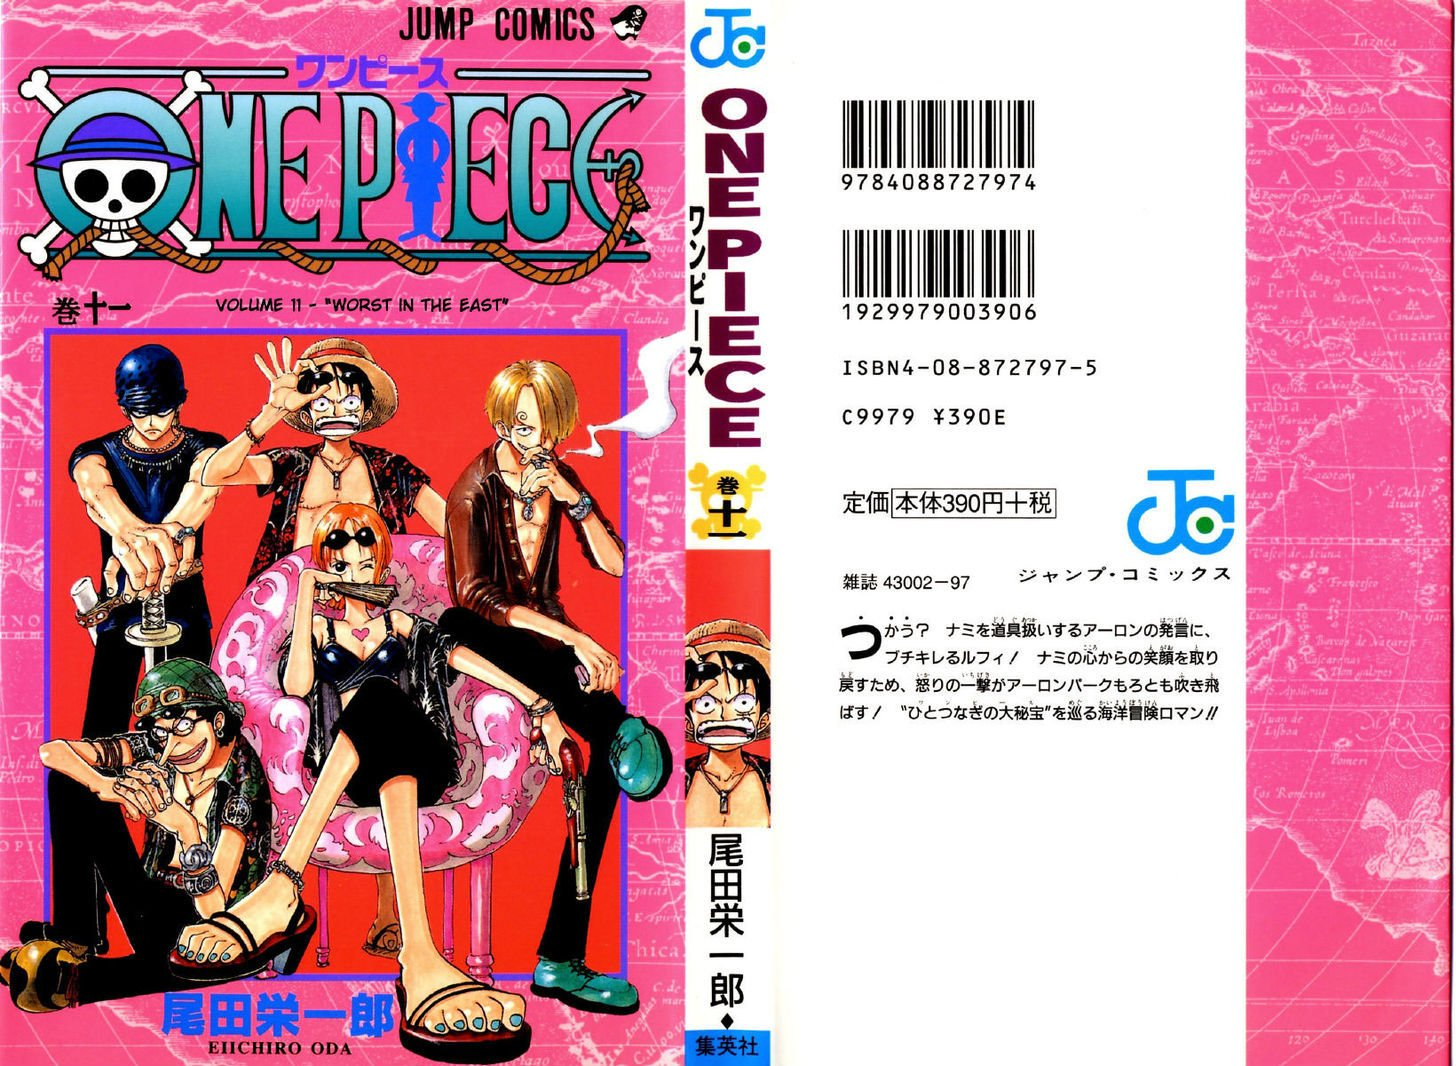 https://im.nineanime.com/comics/pic9/32/96/2439/OnePiece910353.jpg Page 1